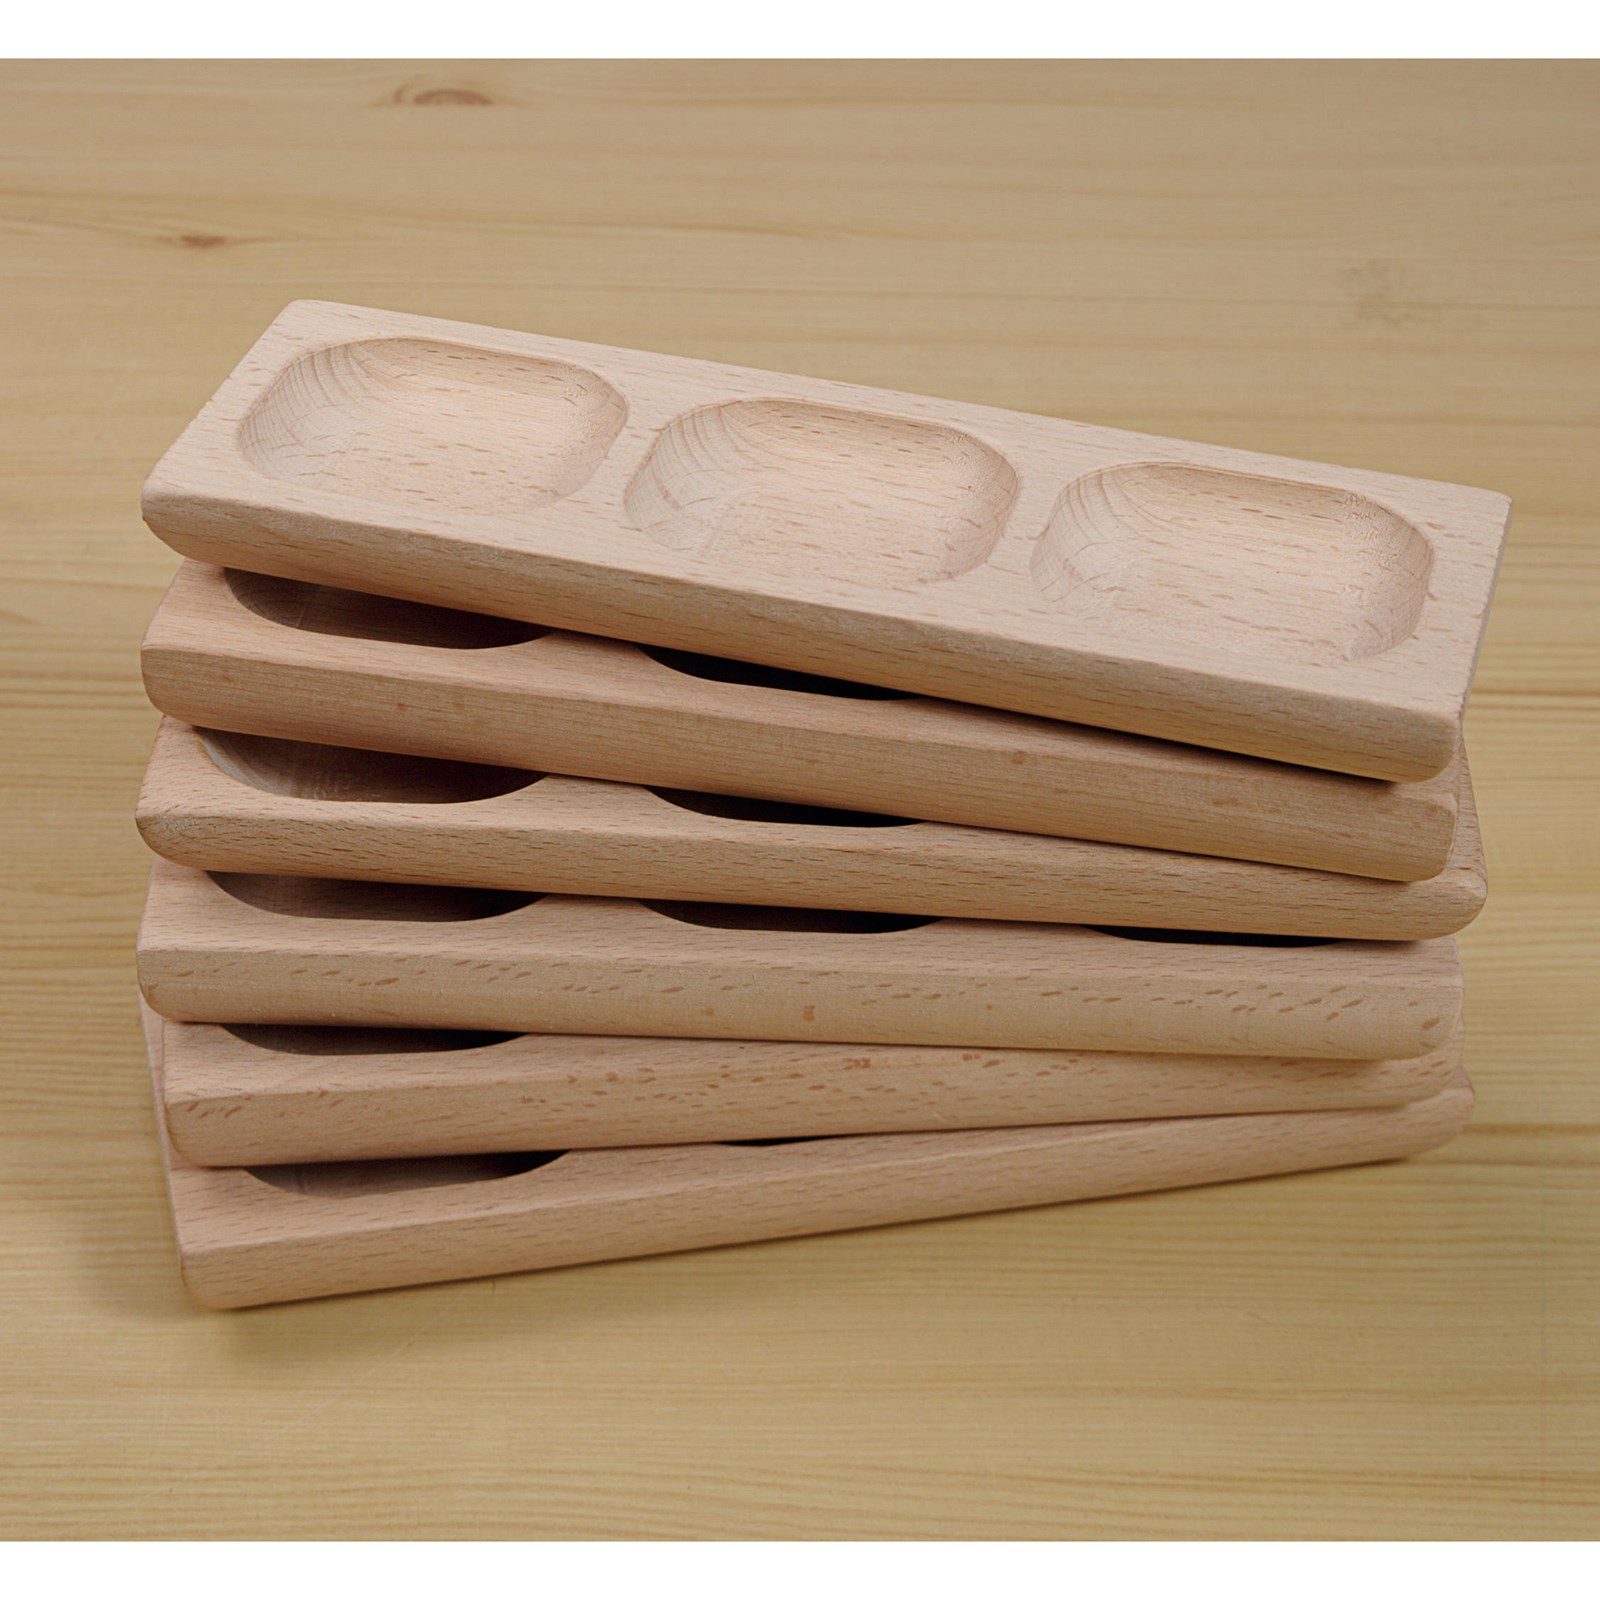 3-Pebble Word-building Trays - Set of 6